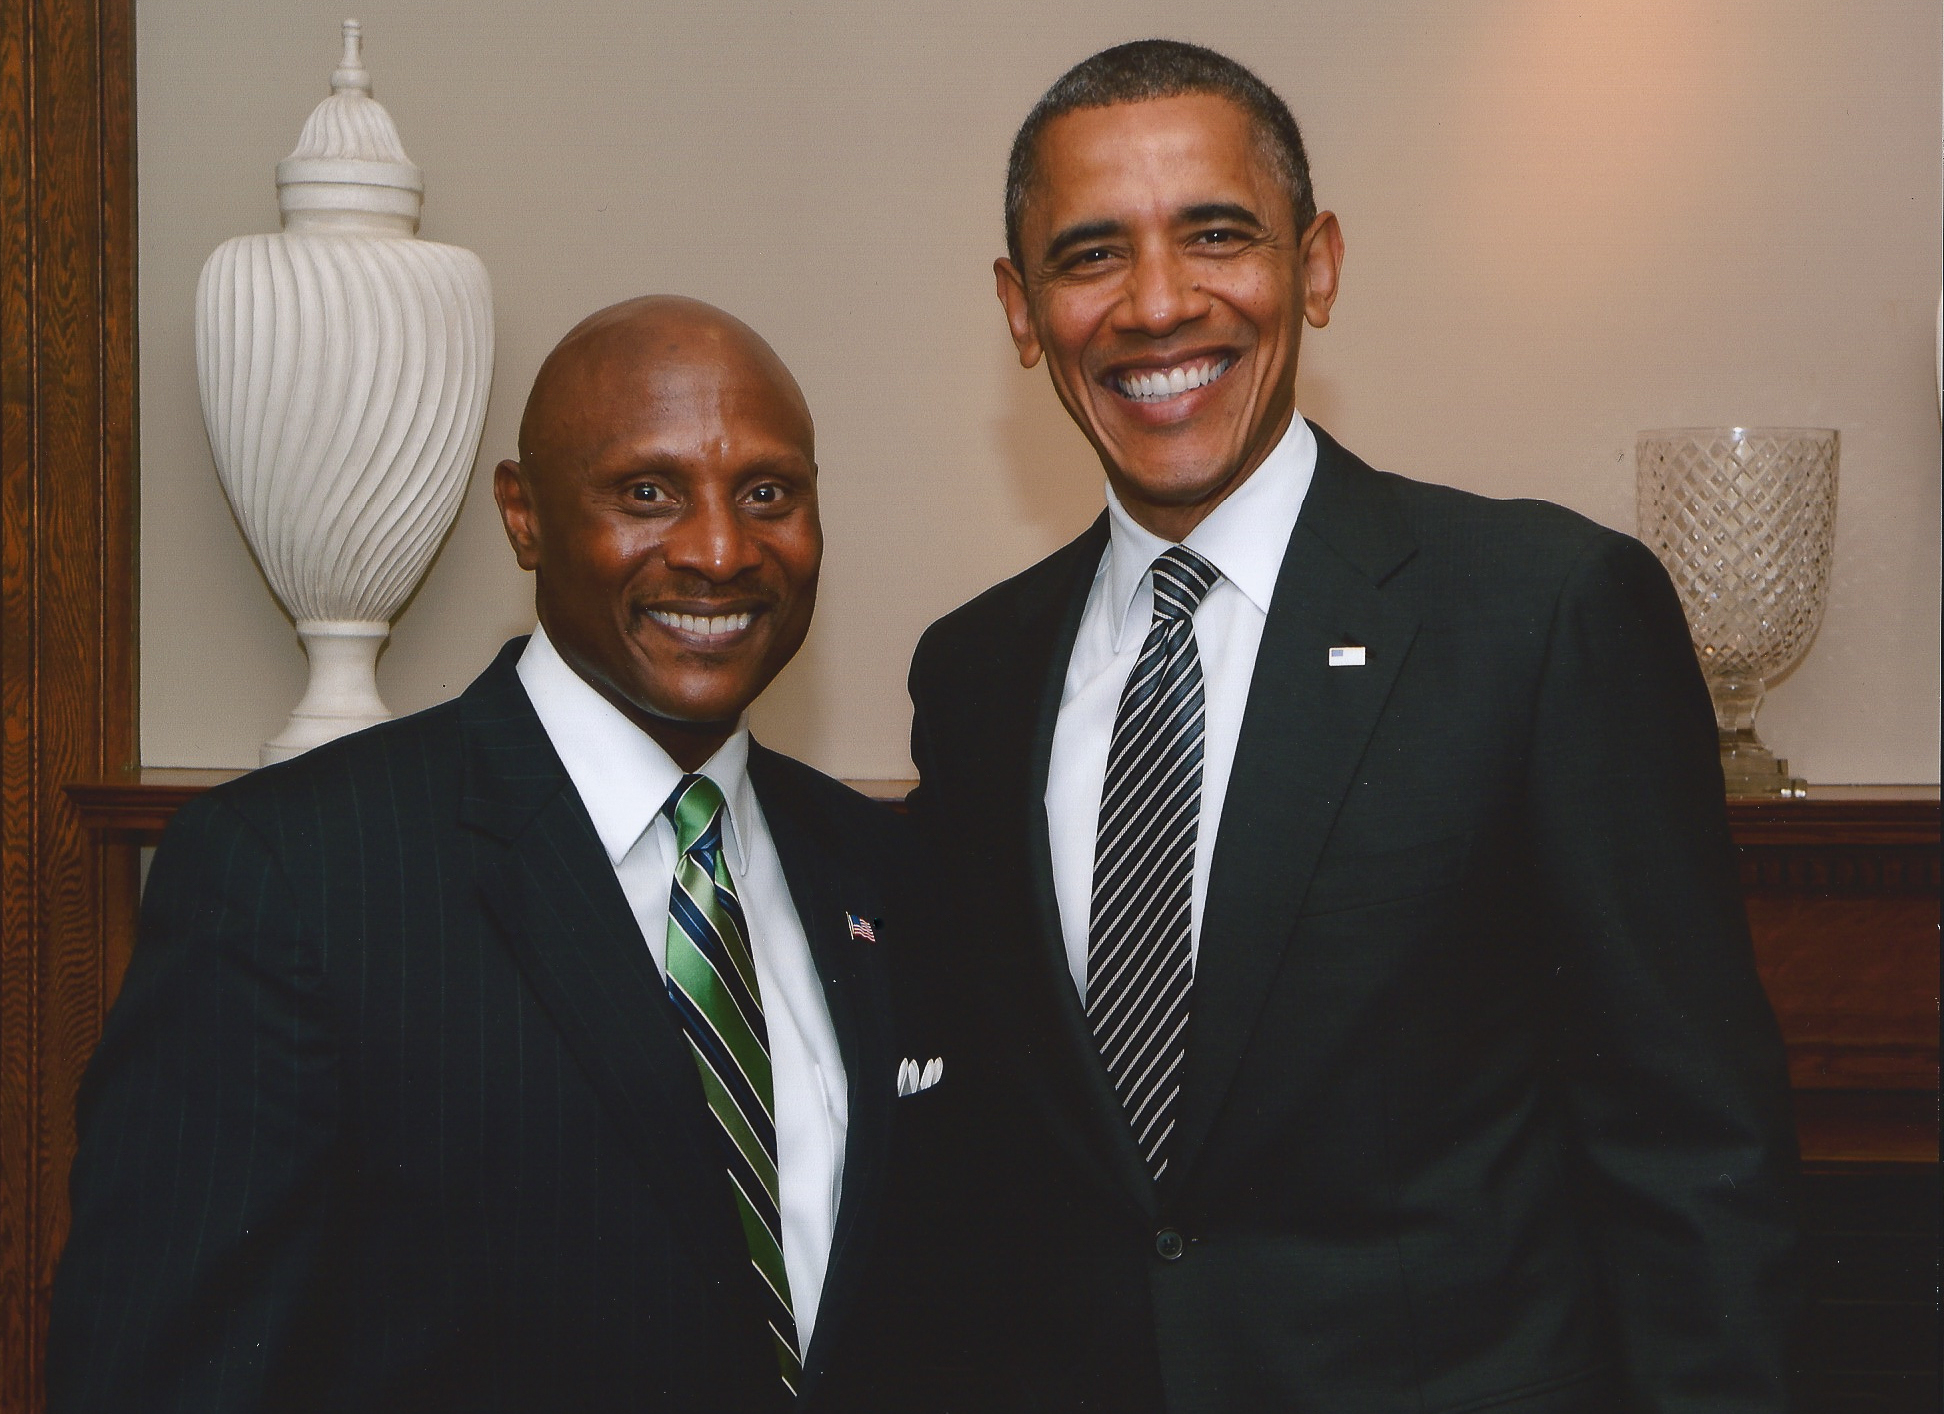 Meeting with President Obama .